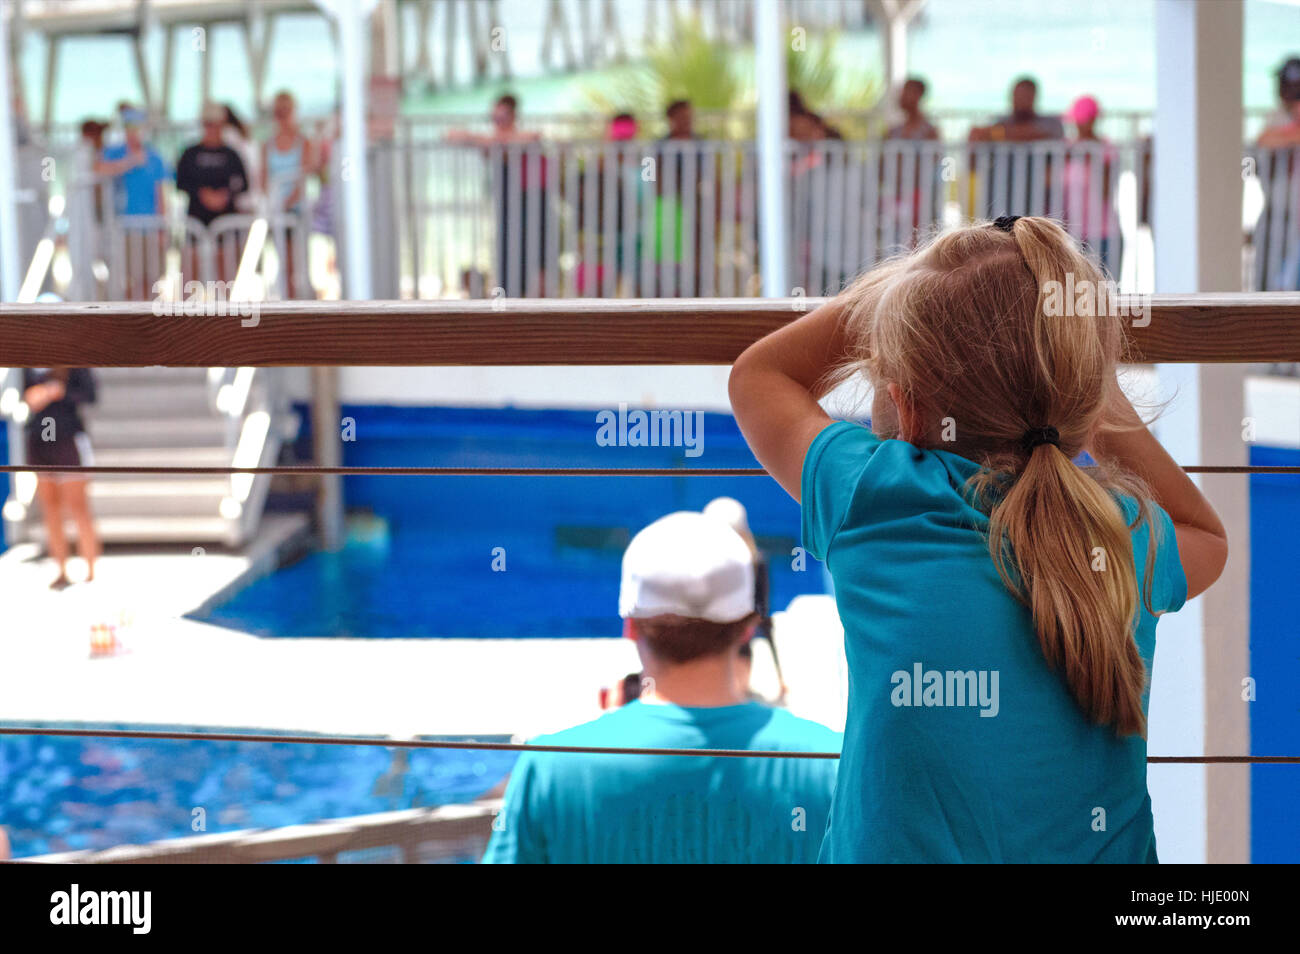 A young girl with blond hair and a blue shirt hanging on the railing of the dolphin show at the Gulfarium Marine - Stock Image